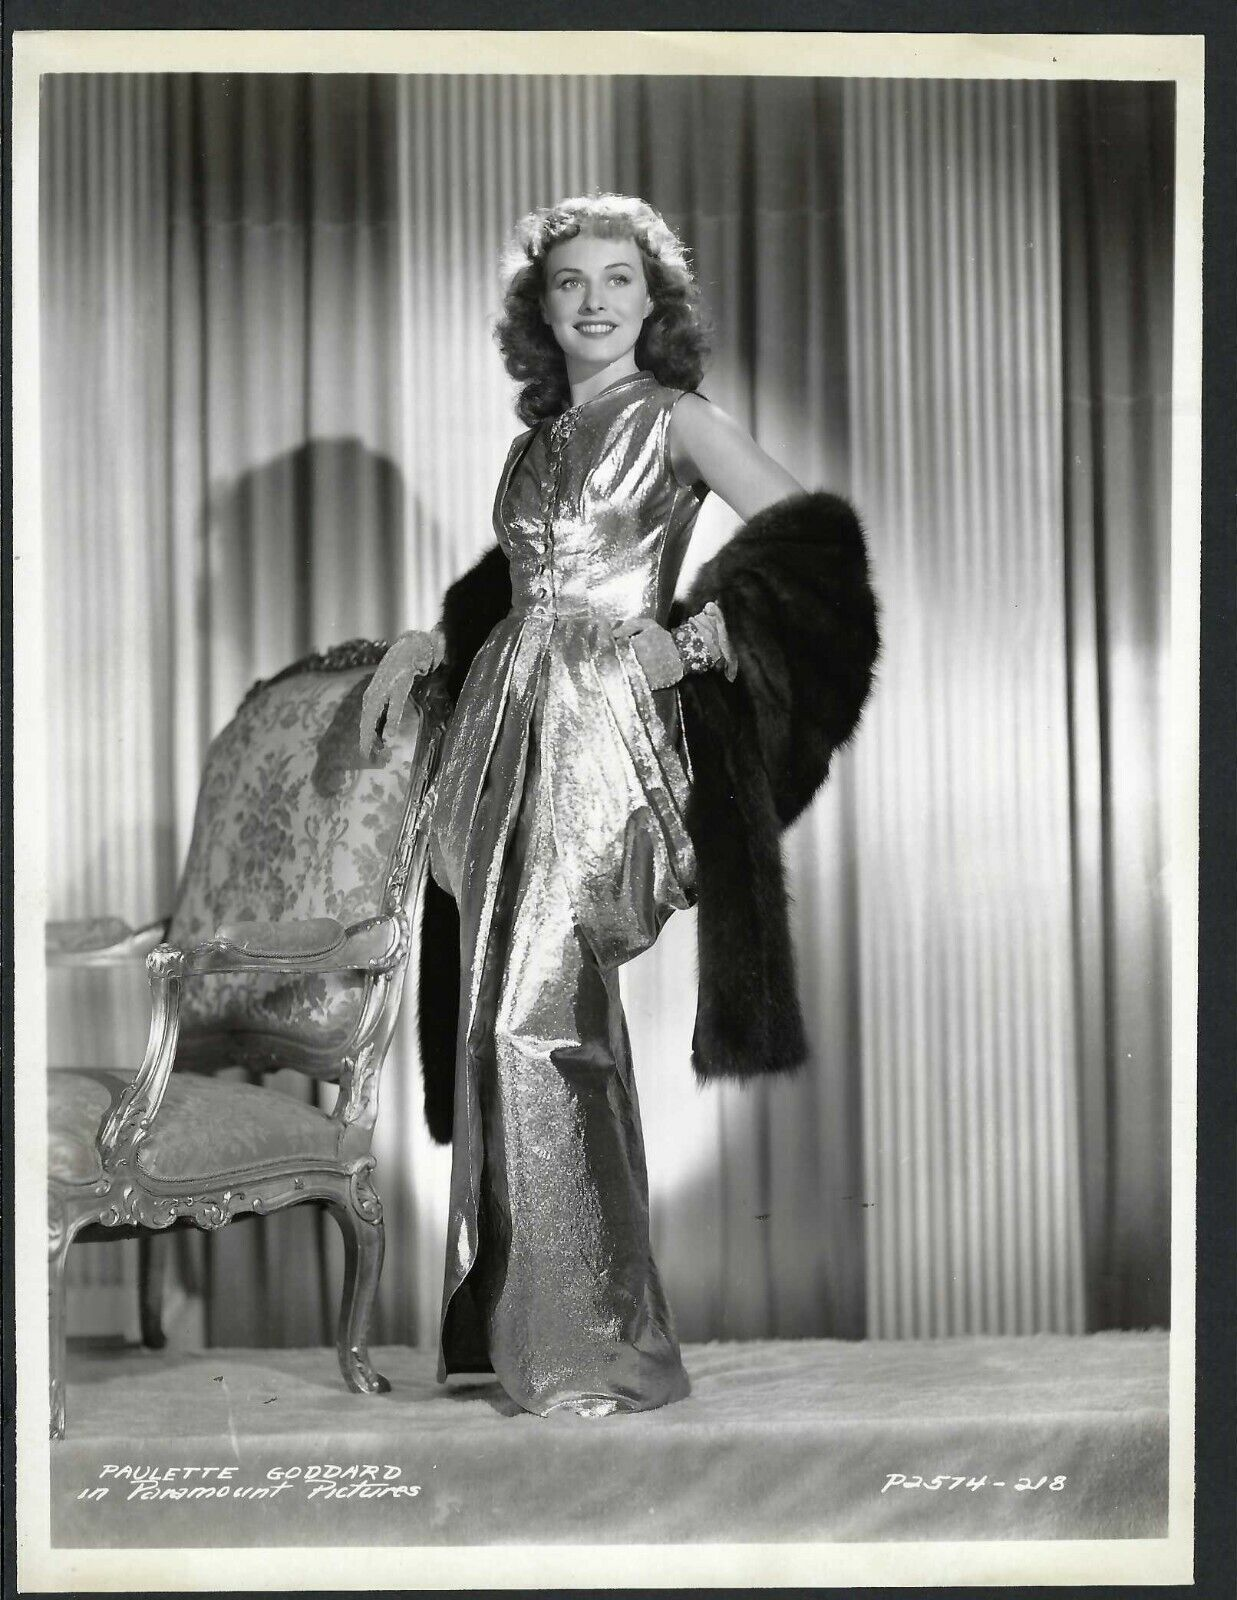 PAULETTE GADDARD ACTRESS IN EXQUISITE GLAMOUR PARAMOUNT PHOTO - $19.99